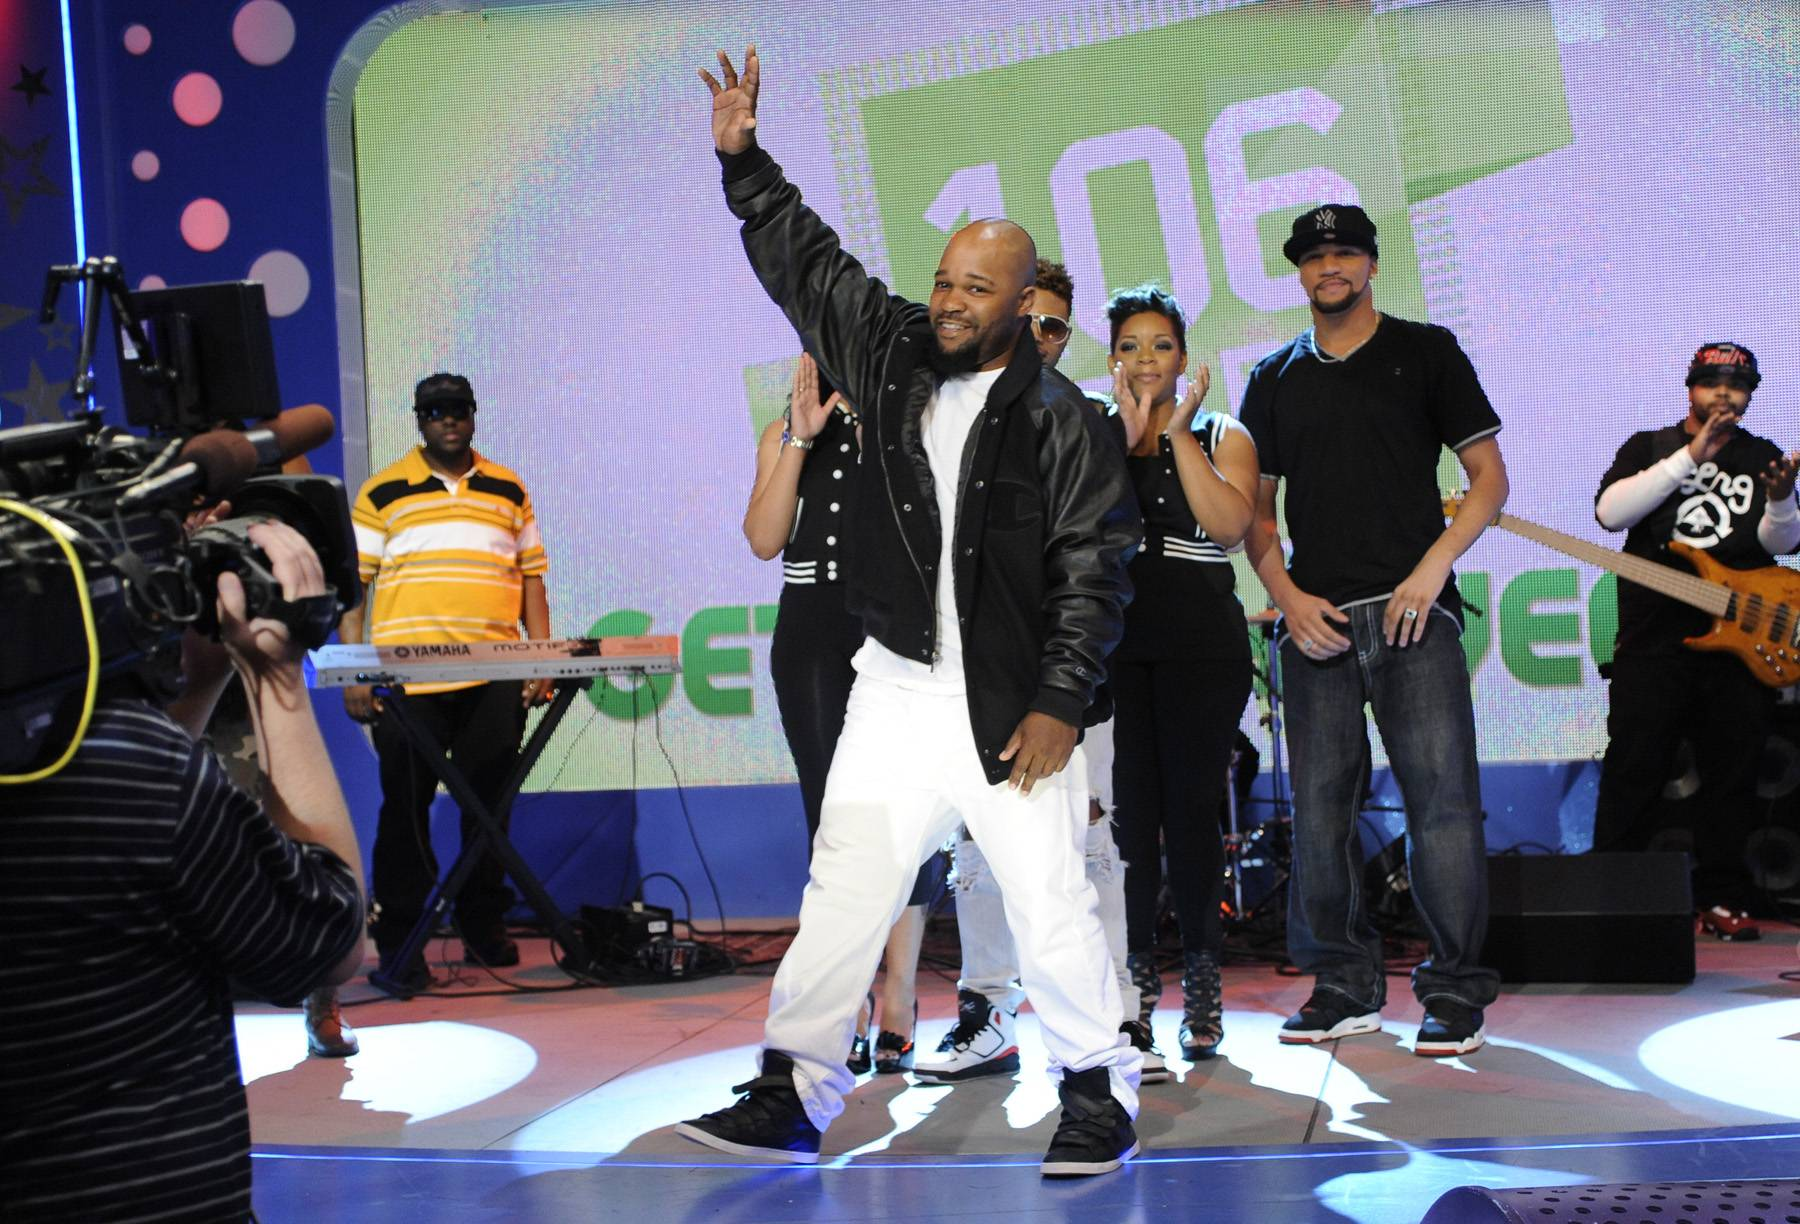 Jus K Takes It All! - Wild Out Wednesday winner Jus K celebrates his victory on the 106 stage!(Photo: John Ricard/BET)